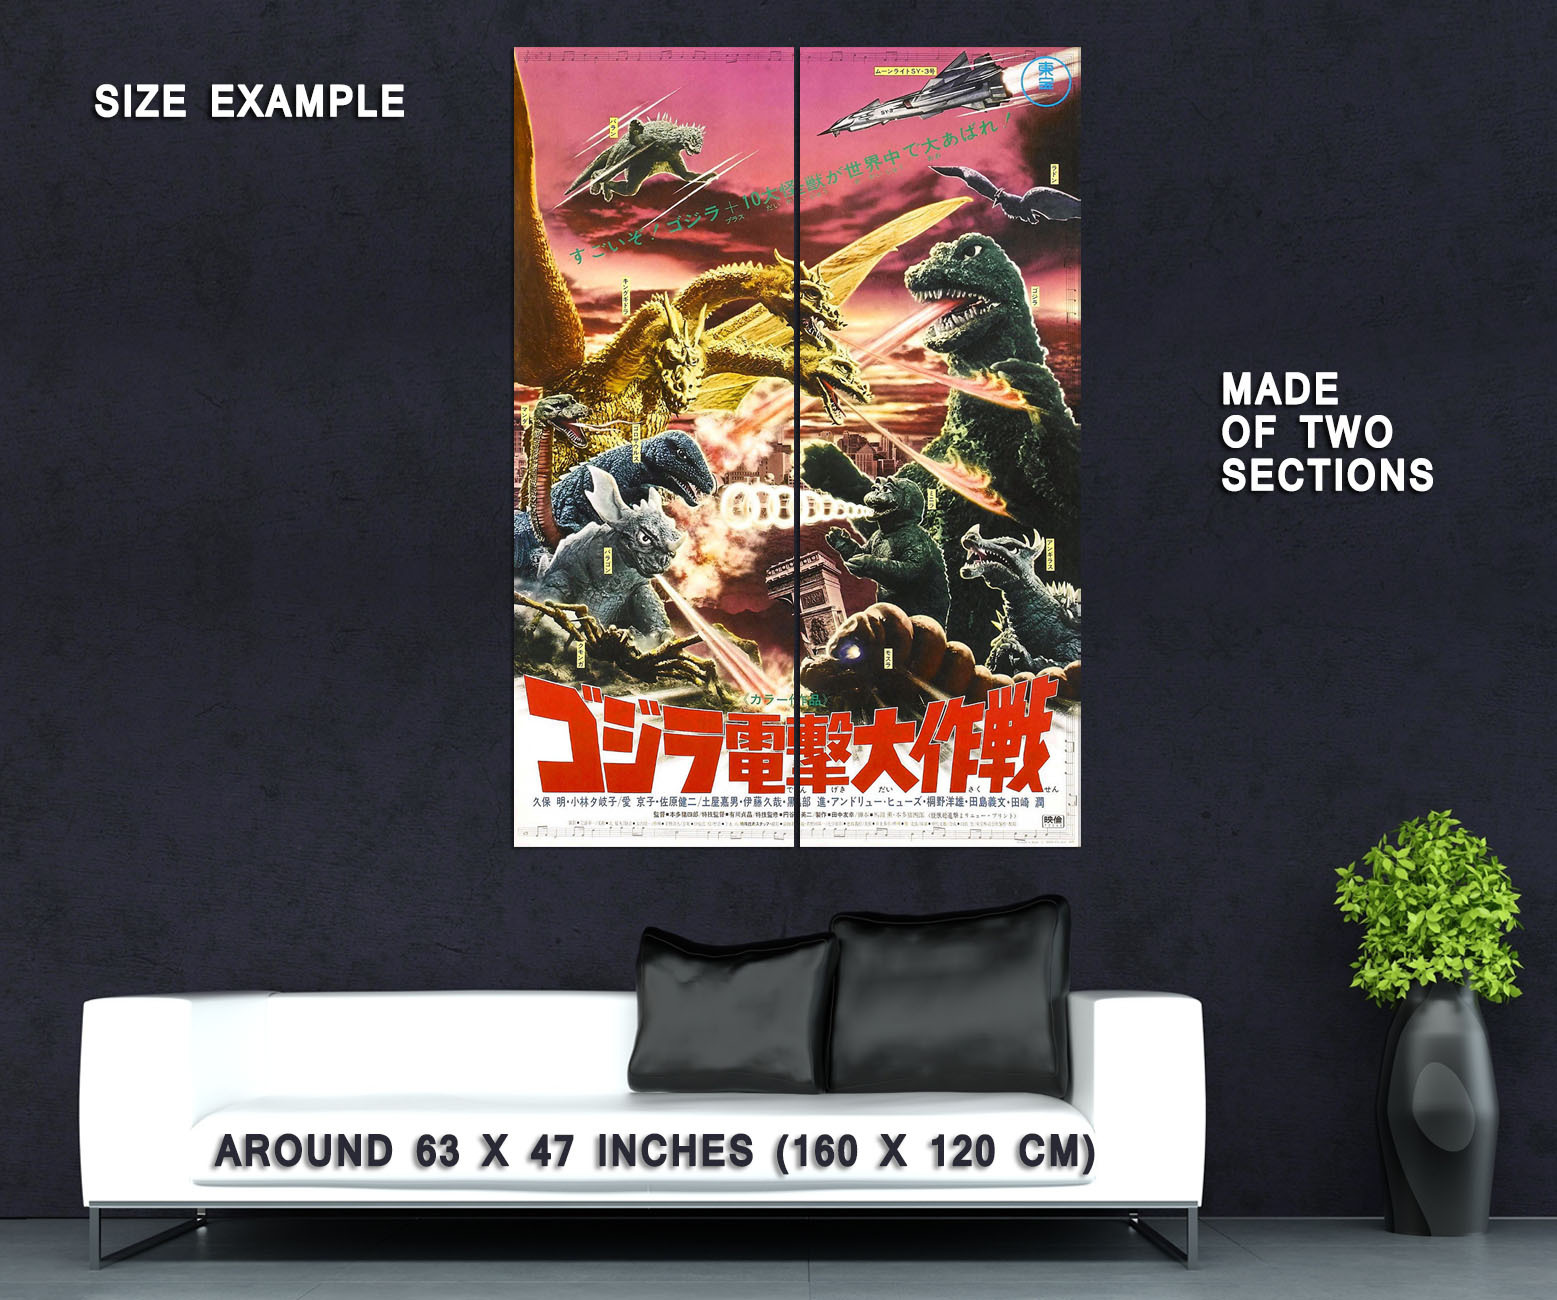 72259 DESTROY ALL MONSTERS Godzilla Mothra King Kong Wall Print Poster